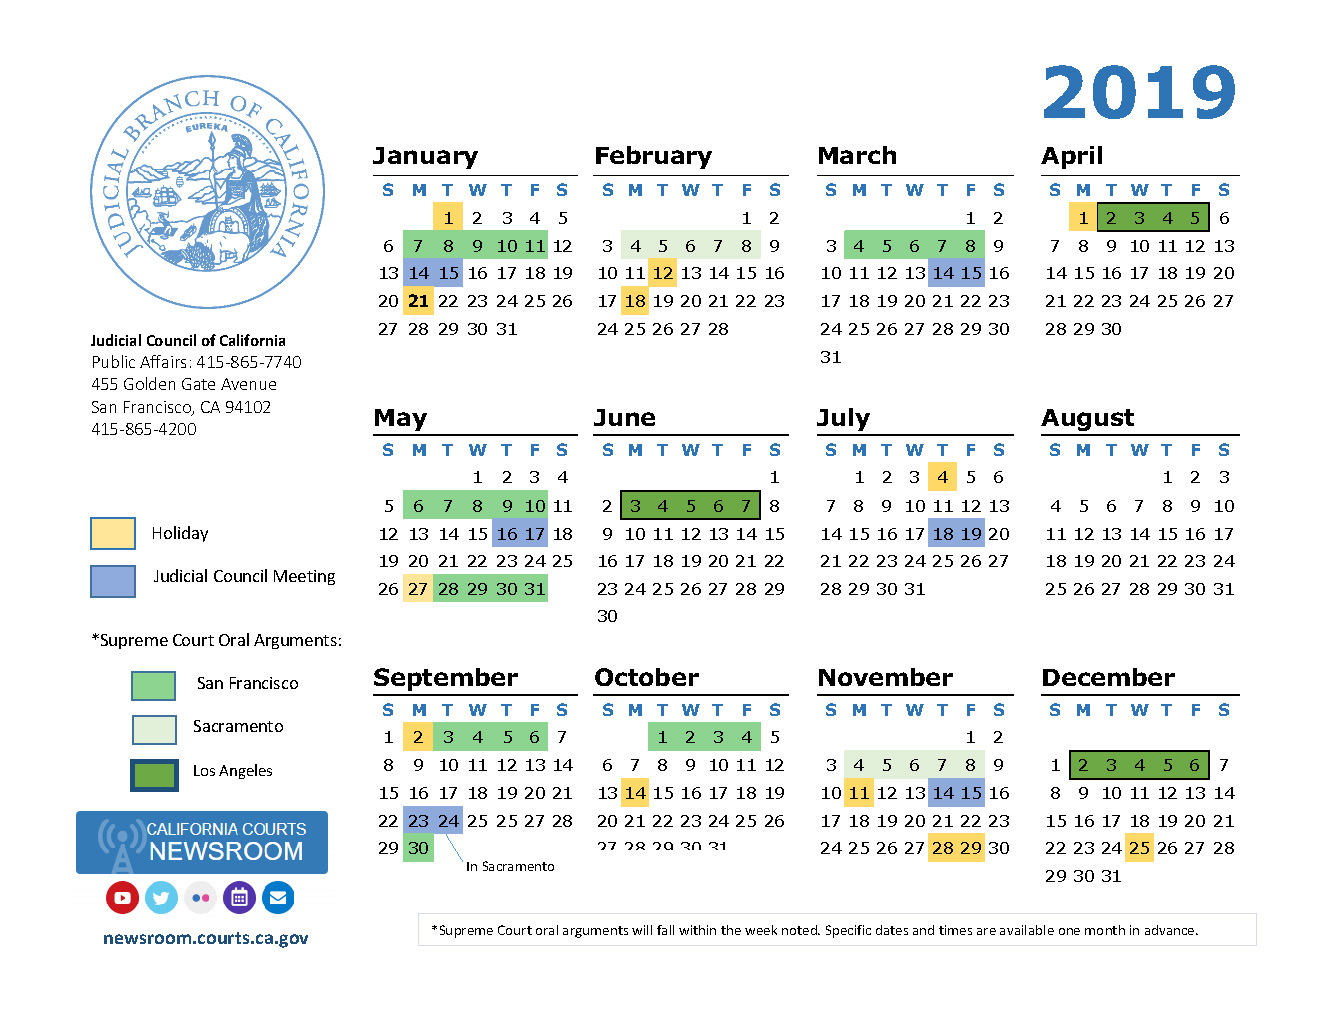 2019 California Courts Calendar | California Courts Newsroom